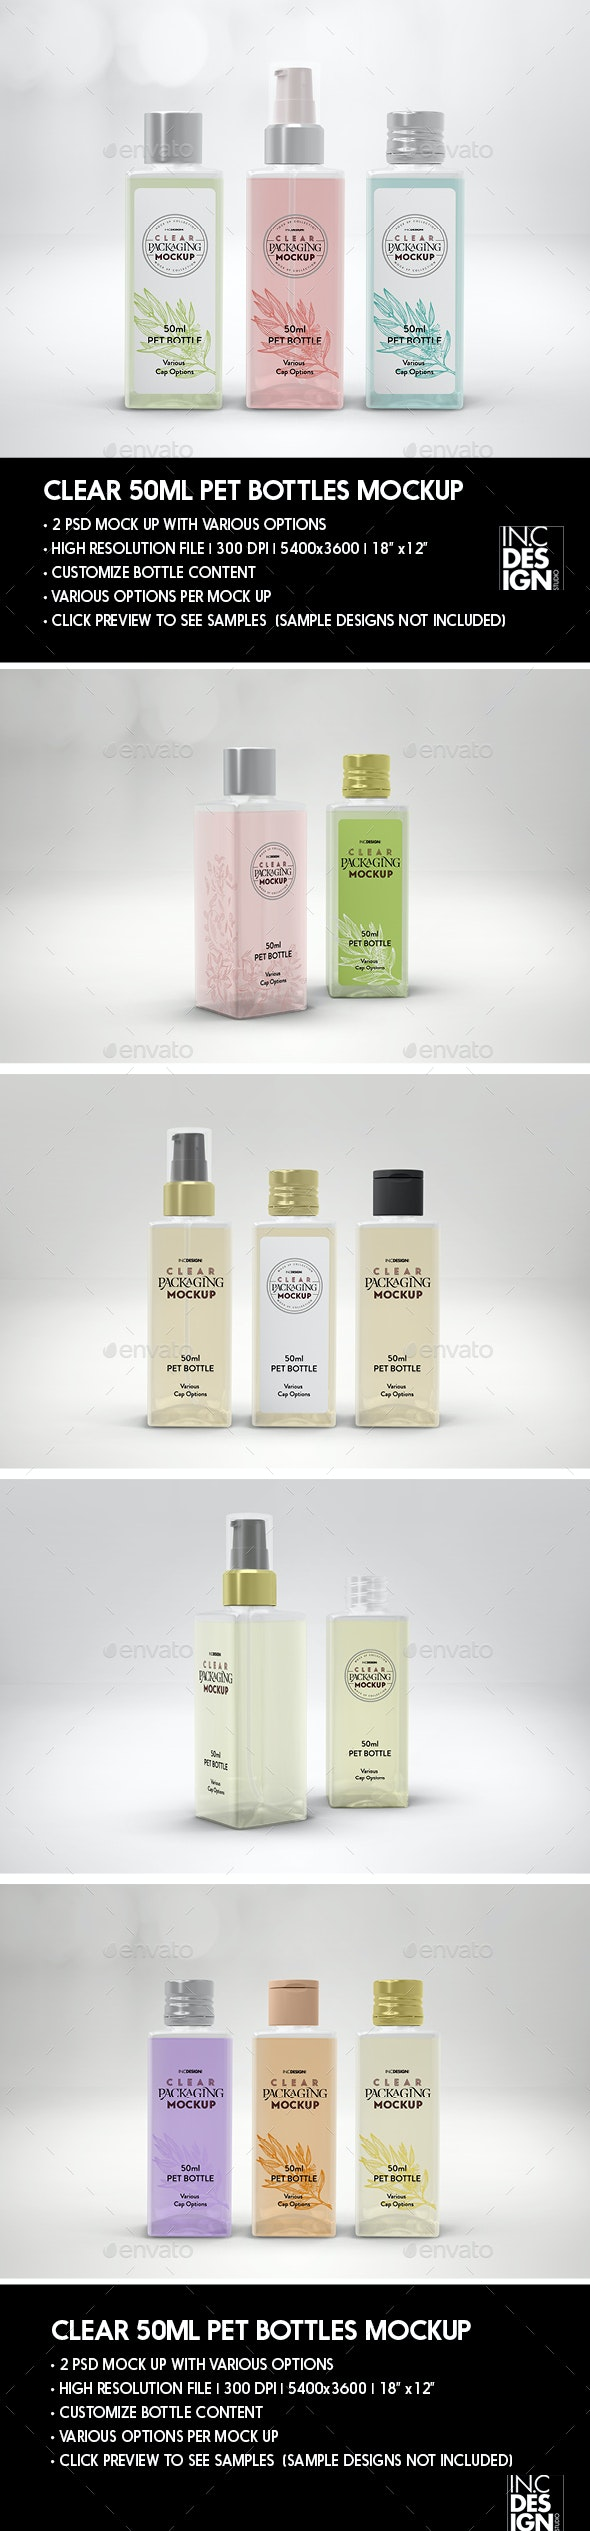 Clear 50ml Square PET Bottles Packaging Mockup - Beauty Packaging